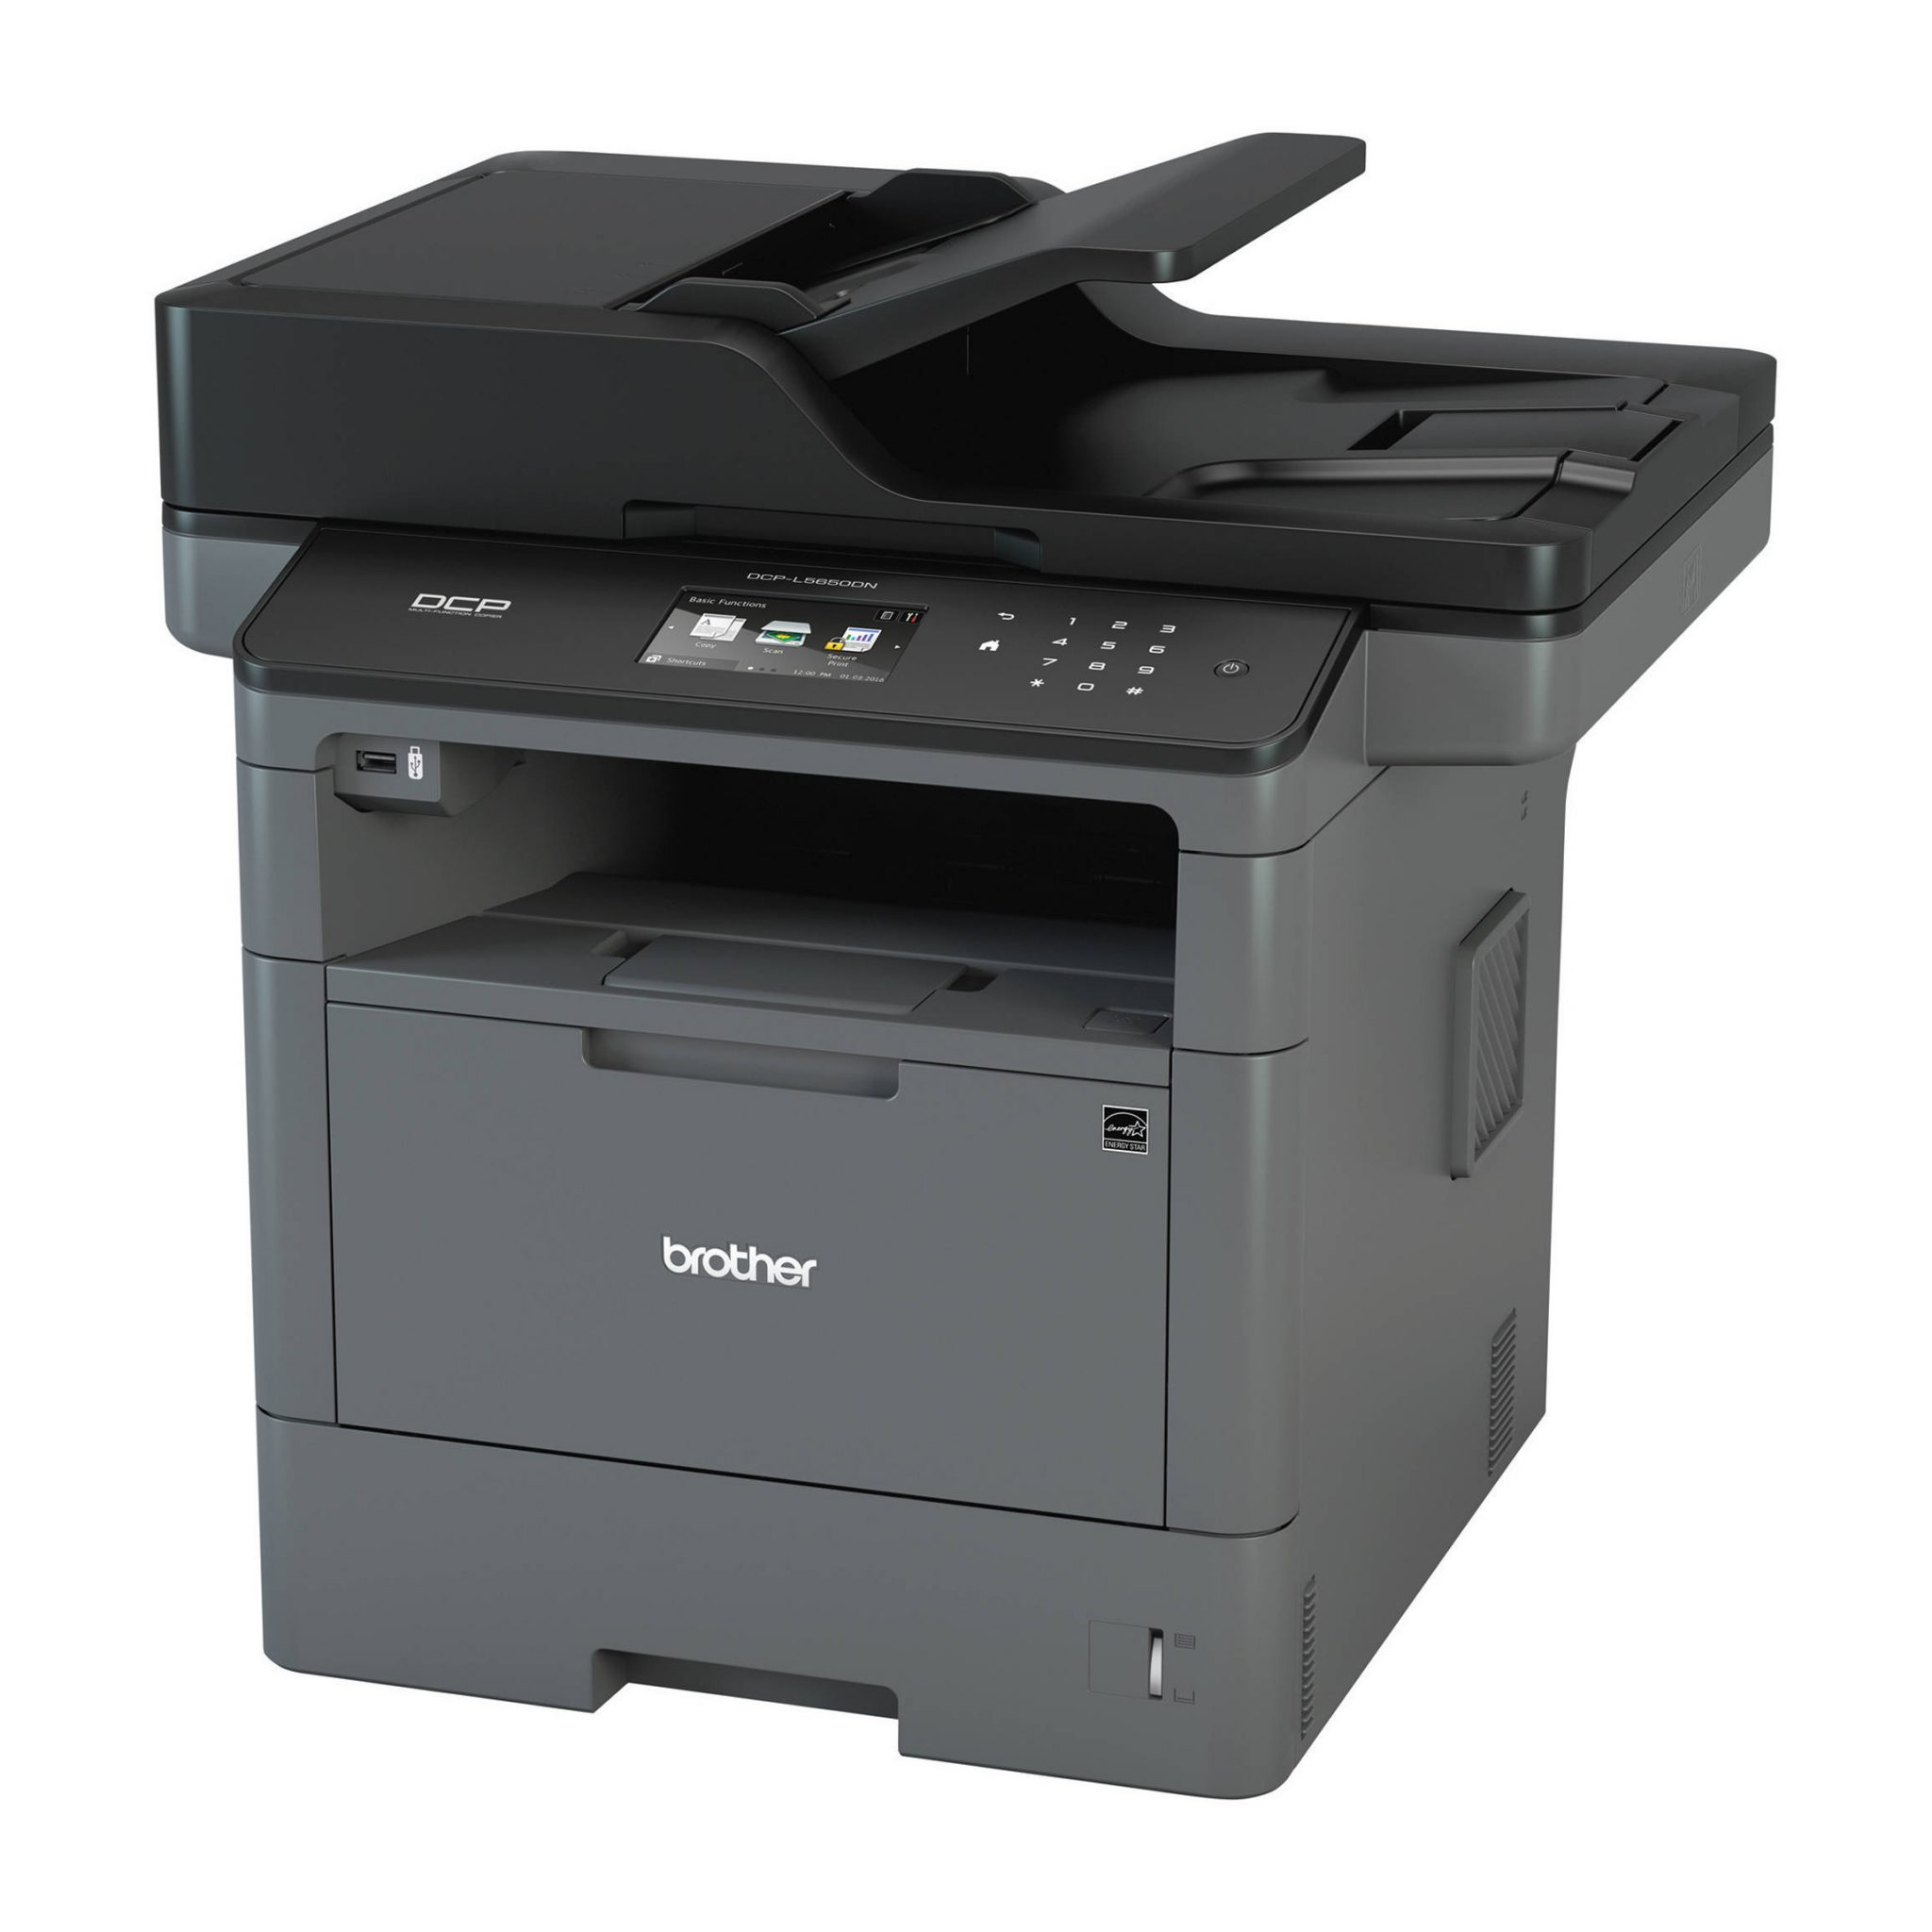 Brother DCP-L5600DN Digital Copier and Laser Printer with Duplex and Networking